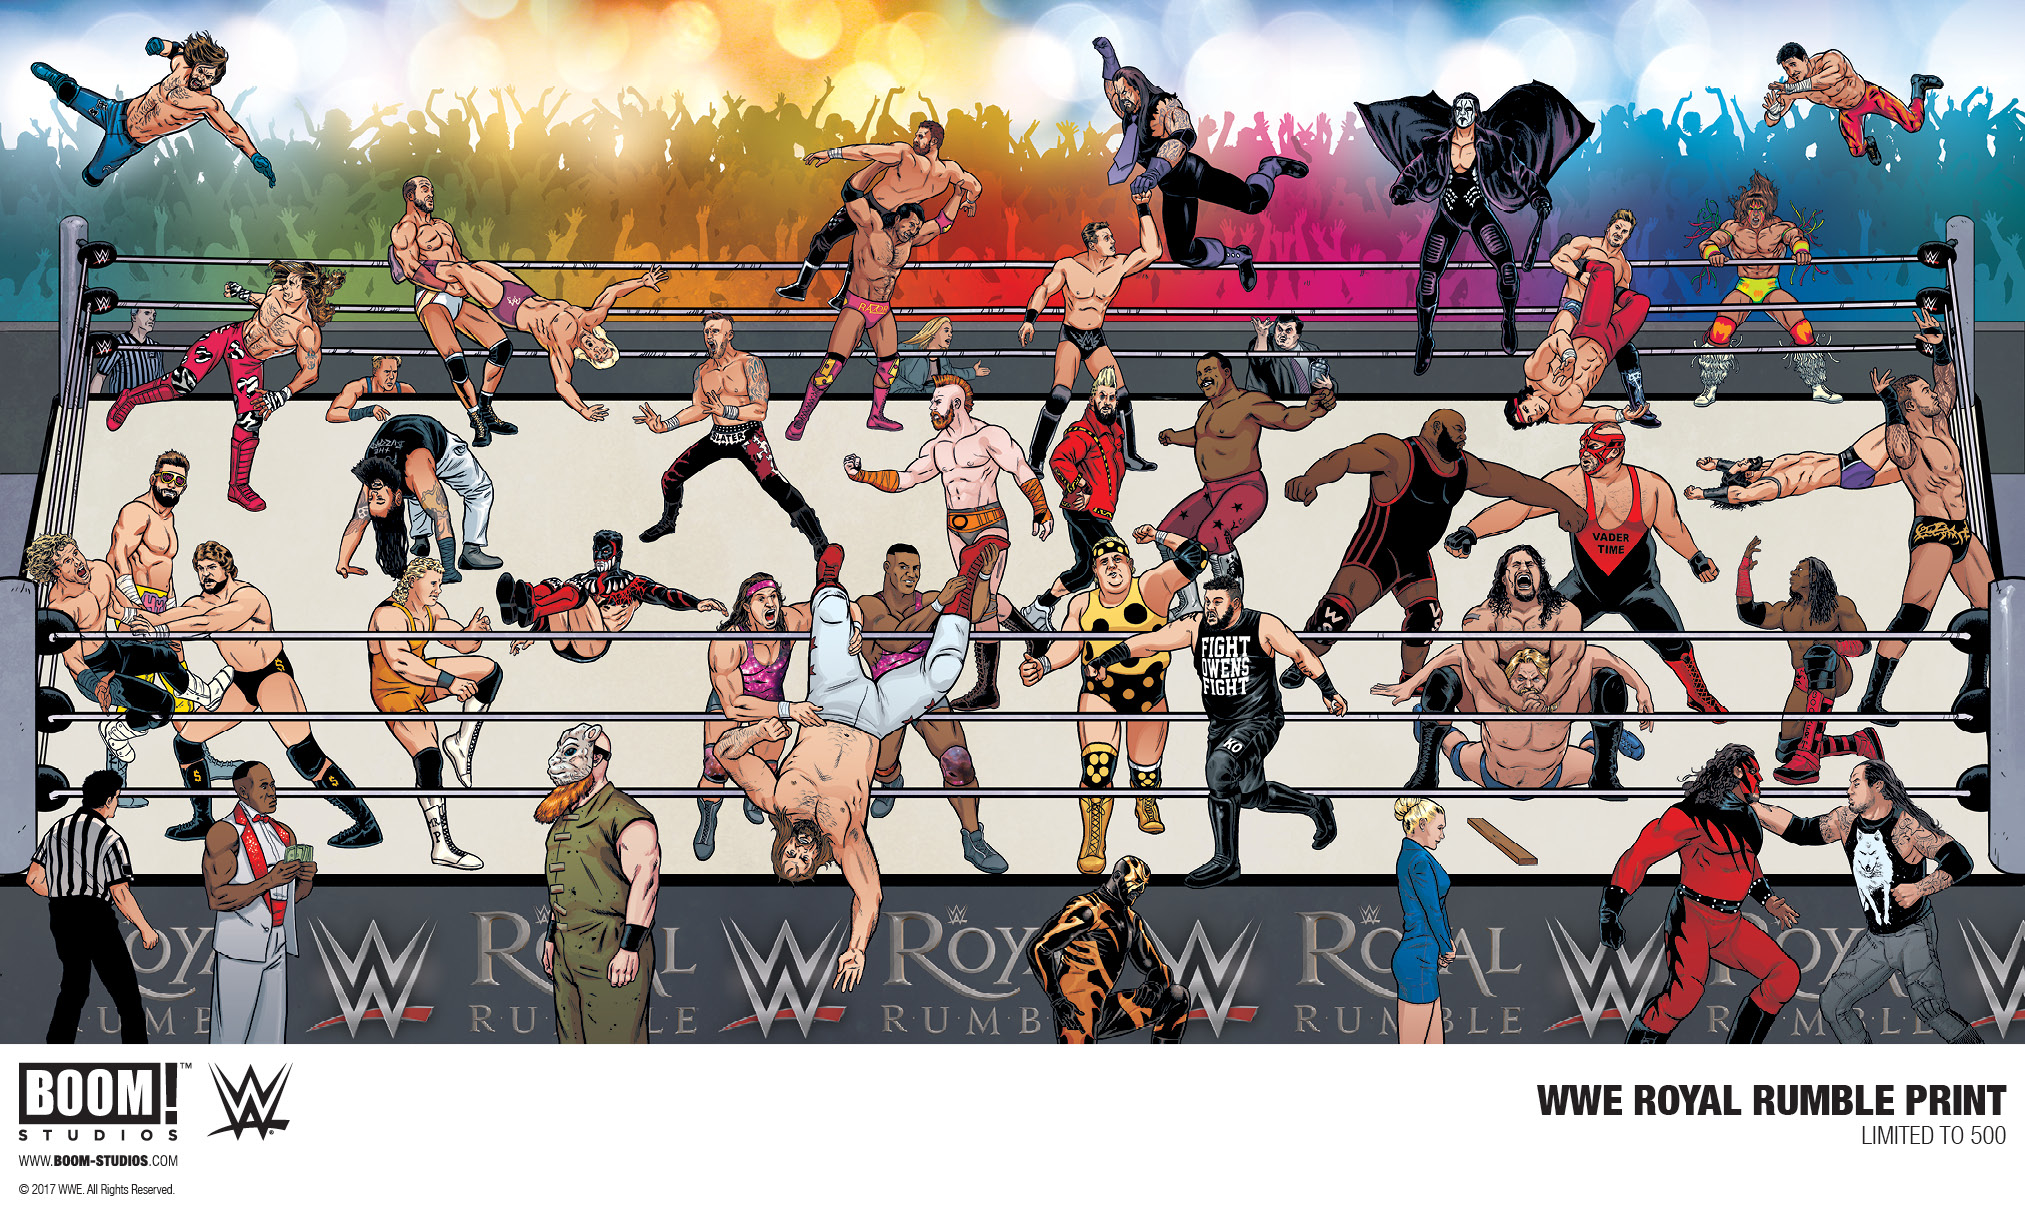 LCSD 2017 WWE ROYAL RUMBLE PRINT